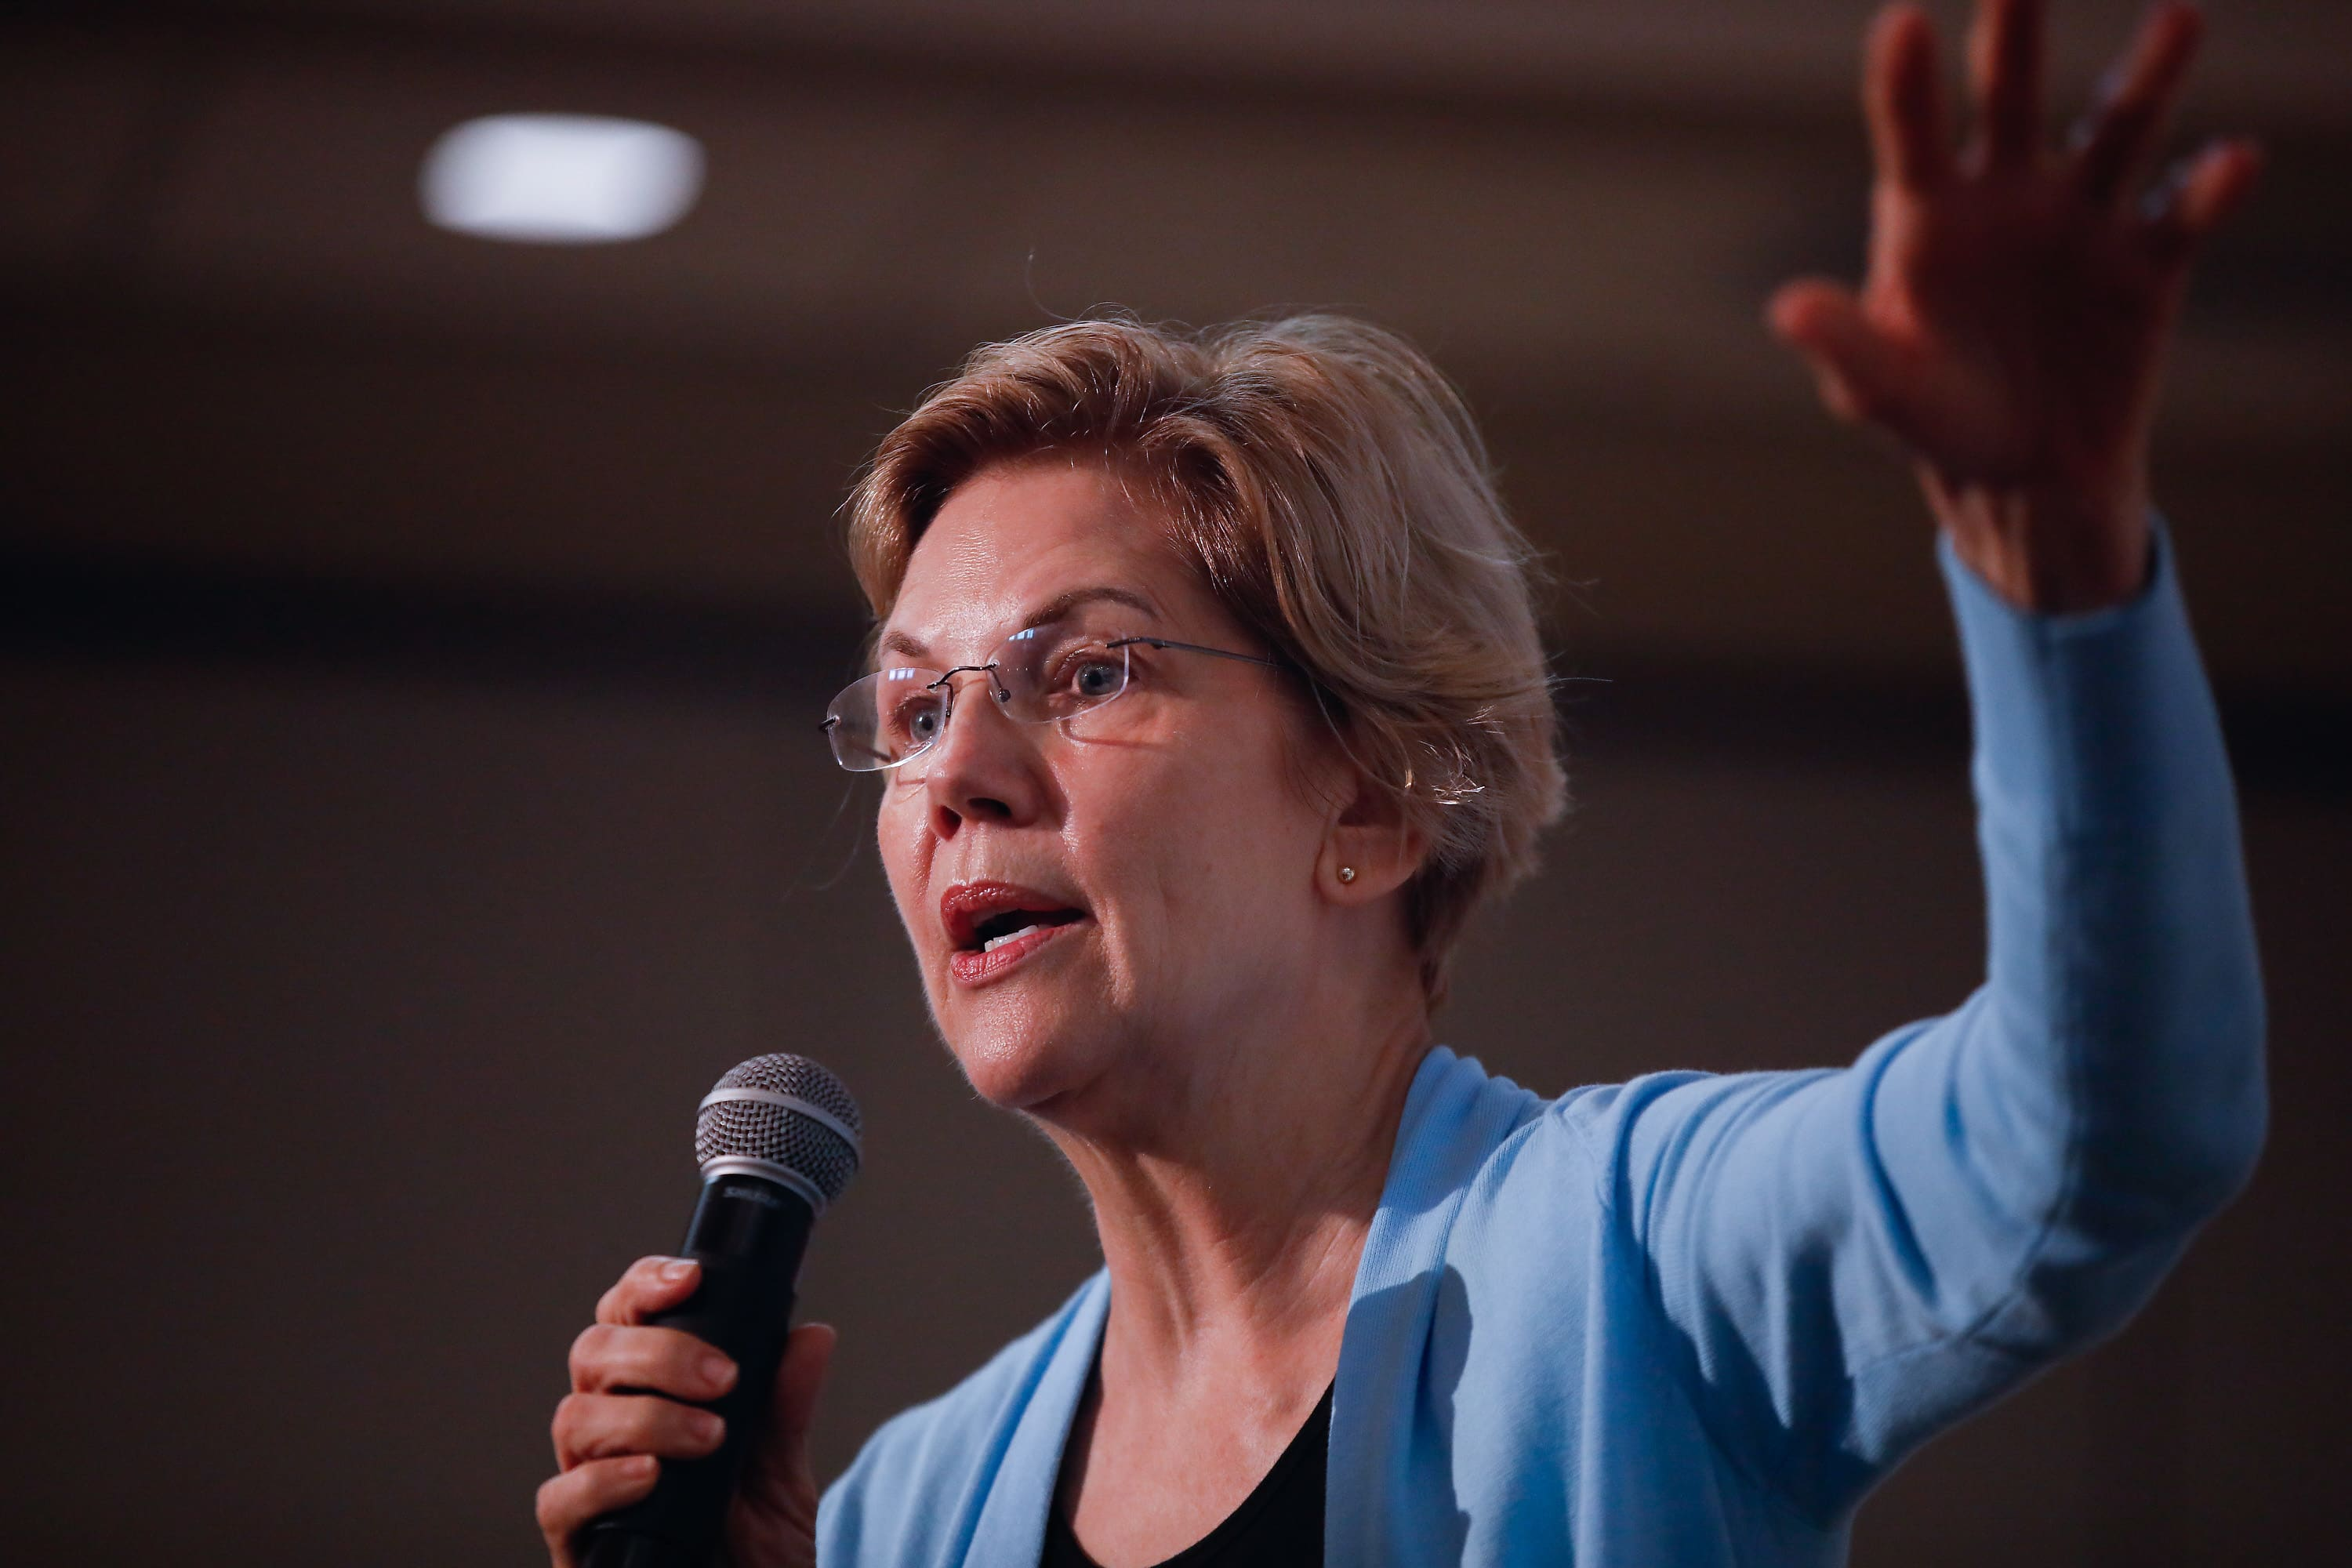 Elizabeth Warren's plan to forgive student debt would help 45 million students